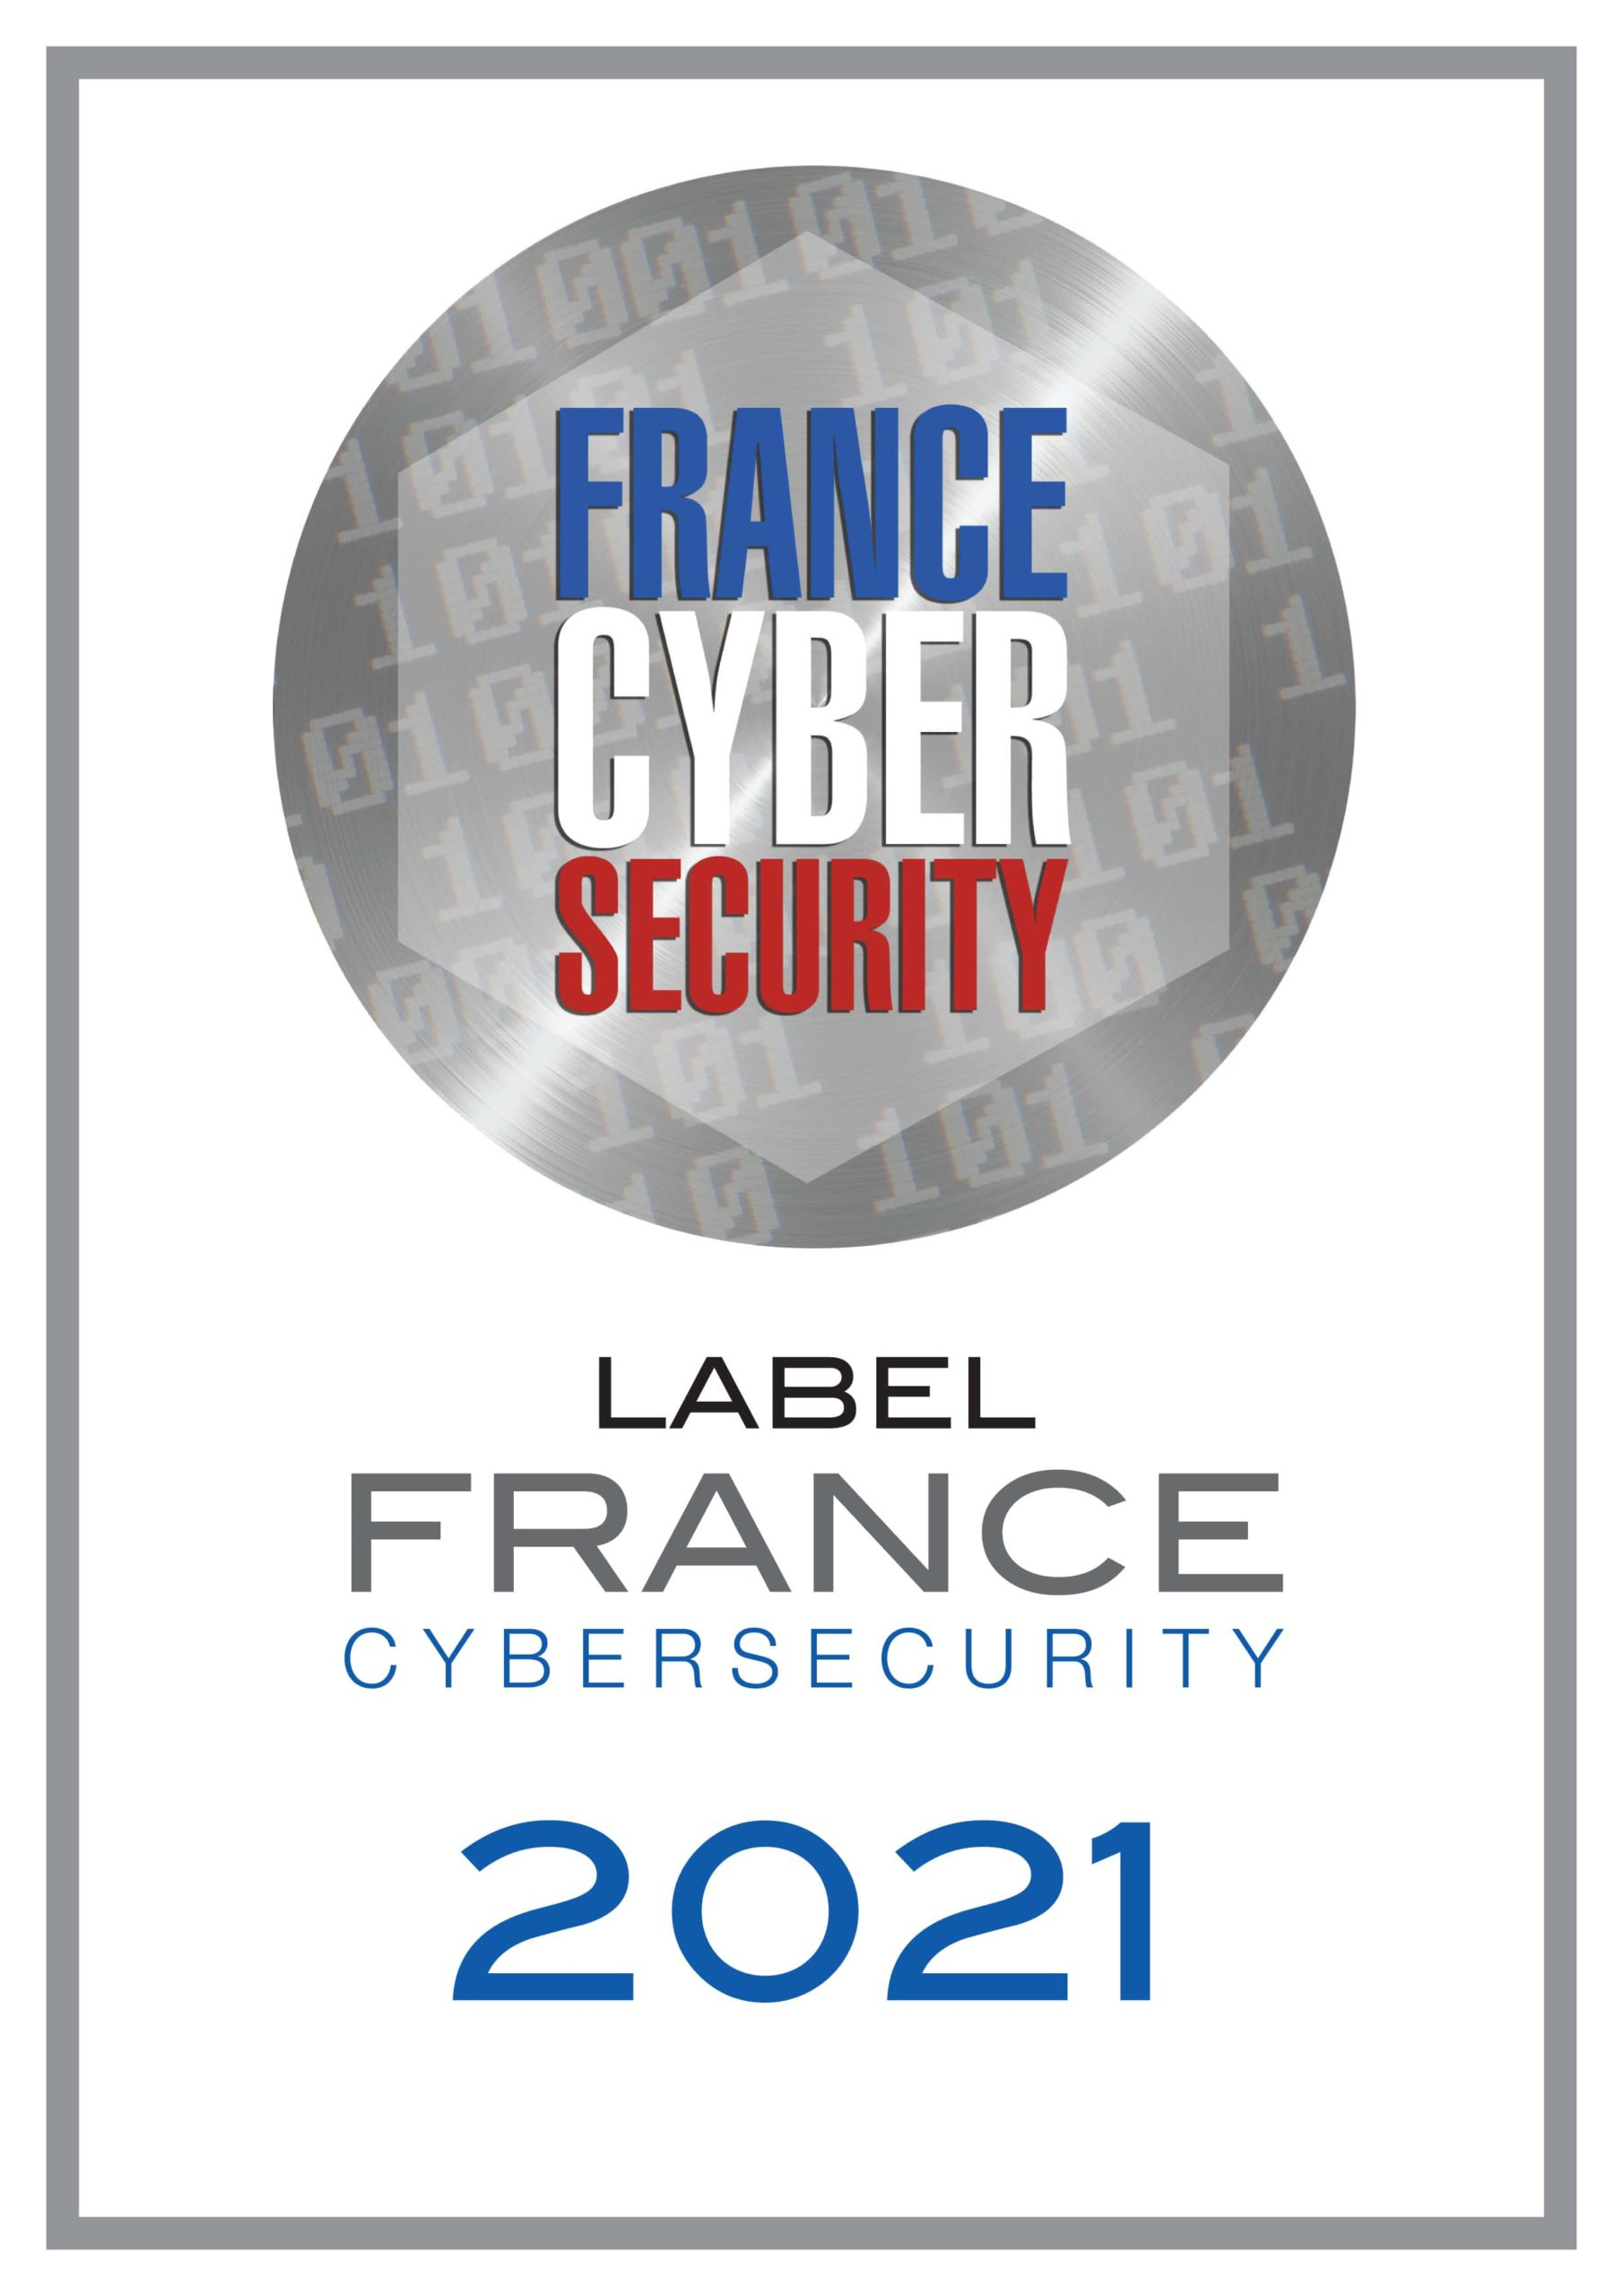 France Cyber Security Label France CYBERSECURITY 2021